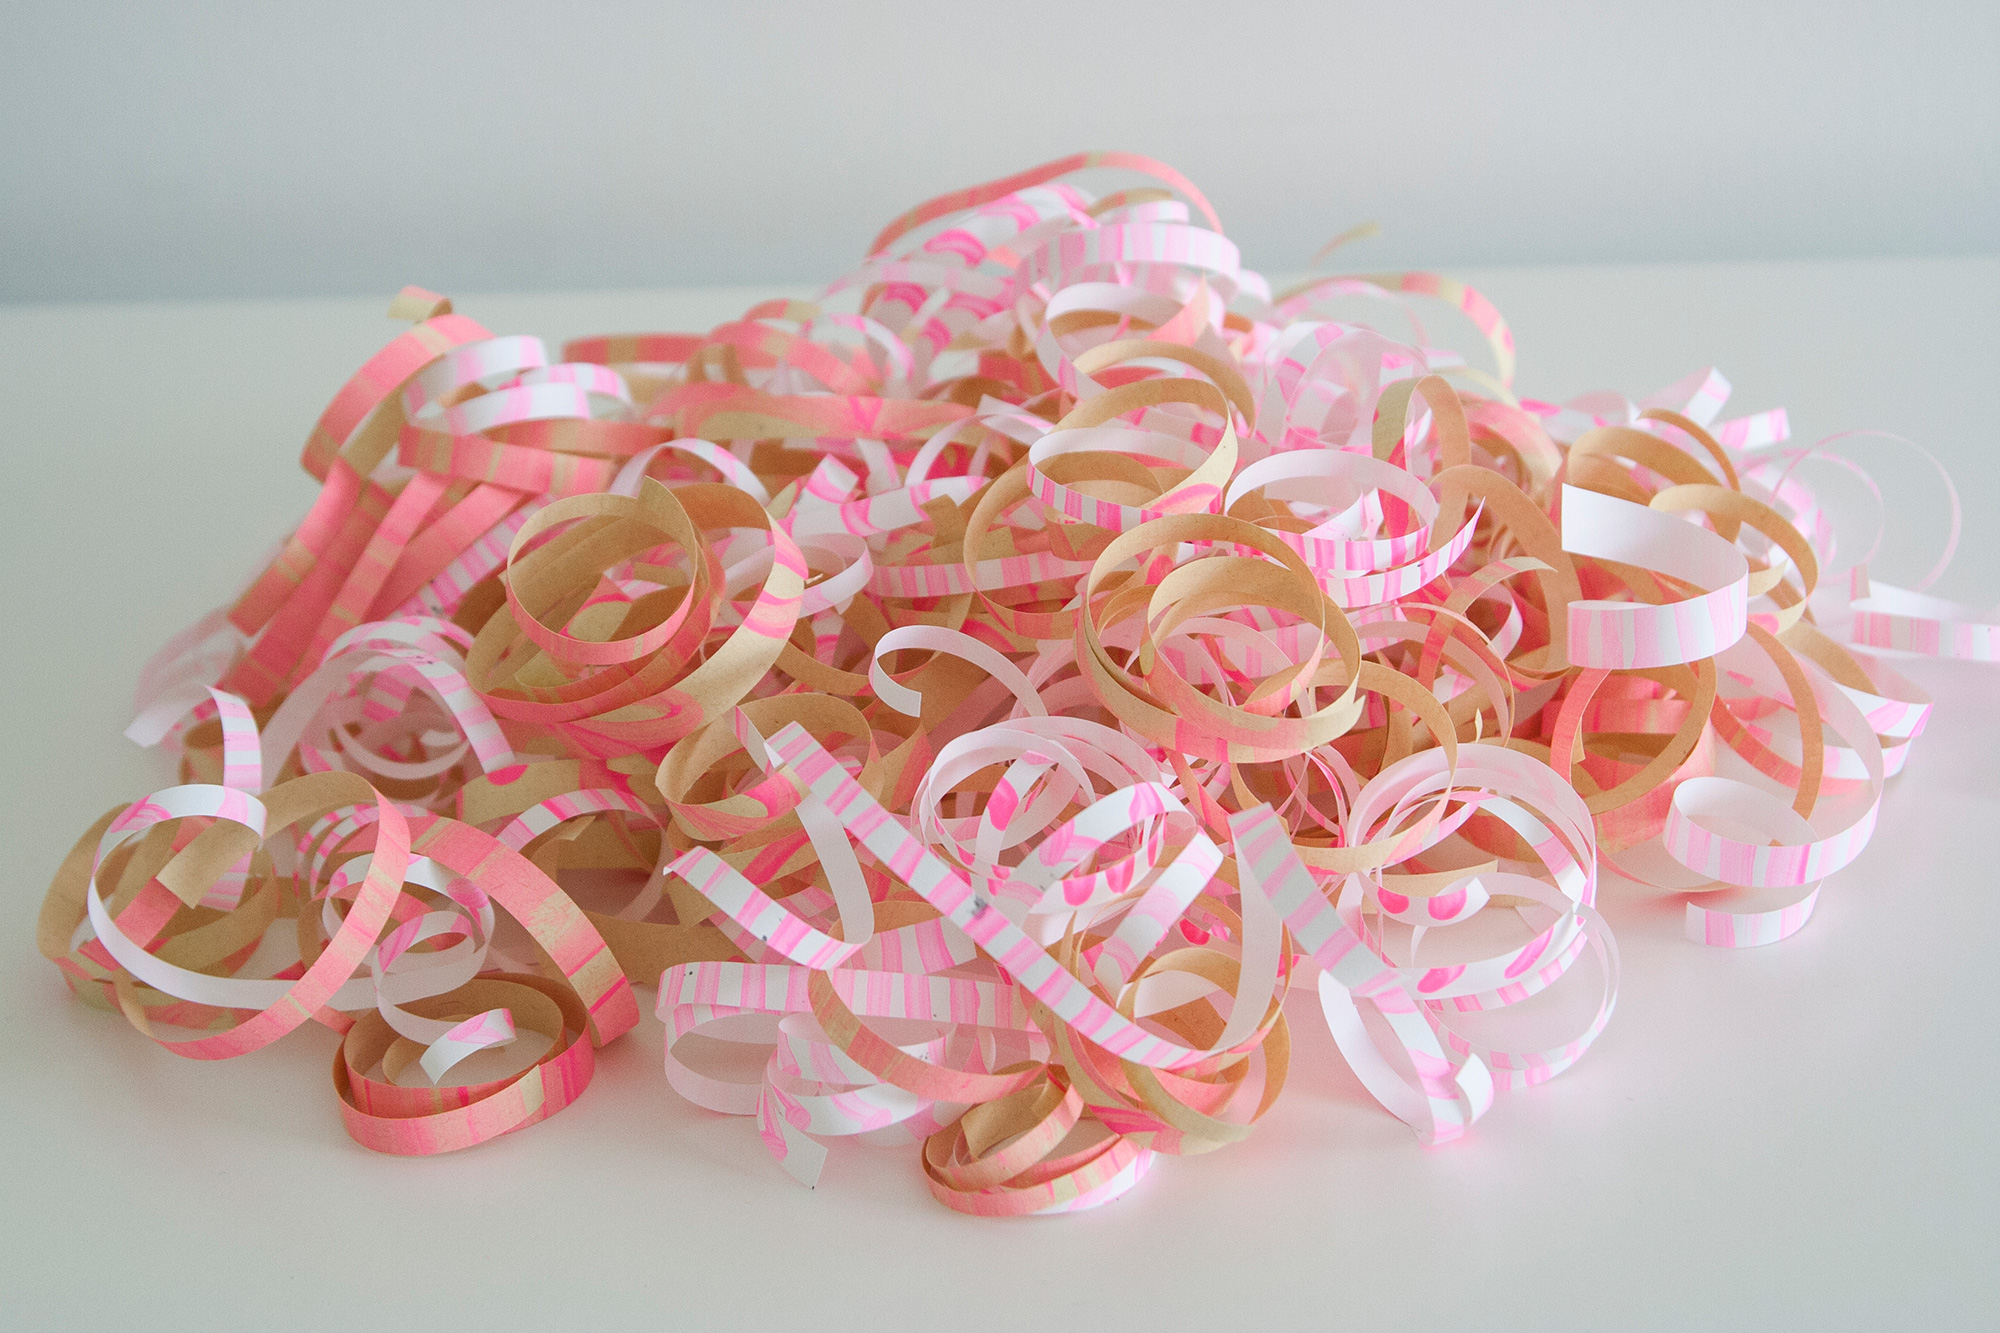 Orange-Paper-Shoppe-DIY-Eco-Friendly-Easter-Grass-9.jpg